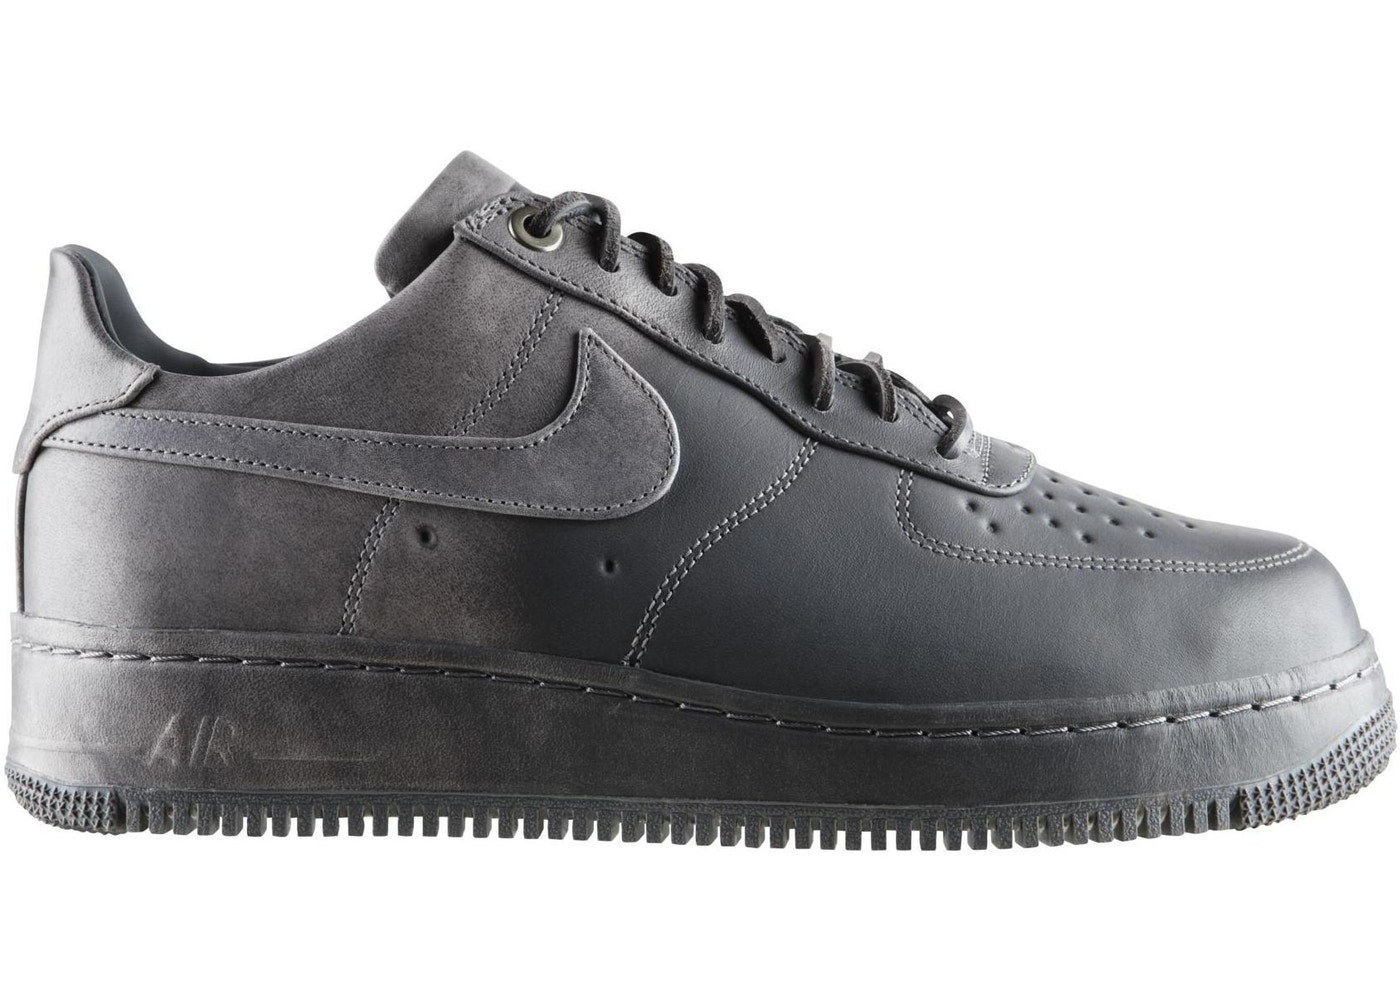 finest selection 7ab8e 1c28e Air Force 1 Low Pigalle Cool Grey - 669916-090